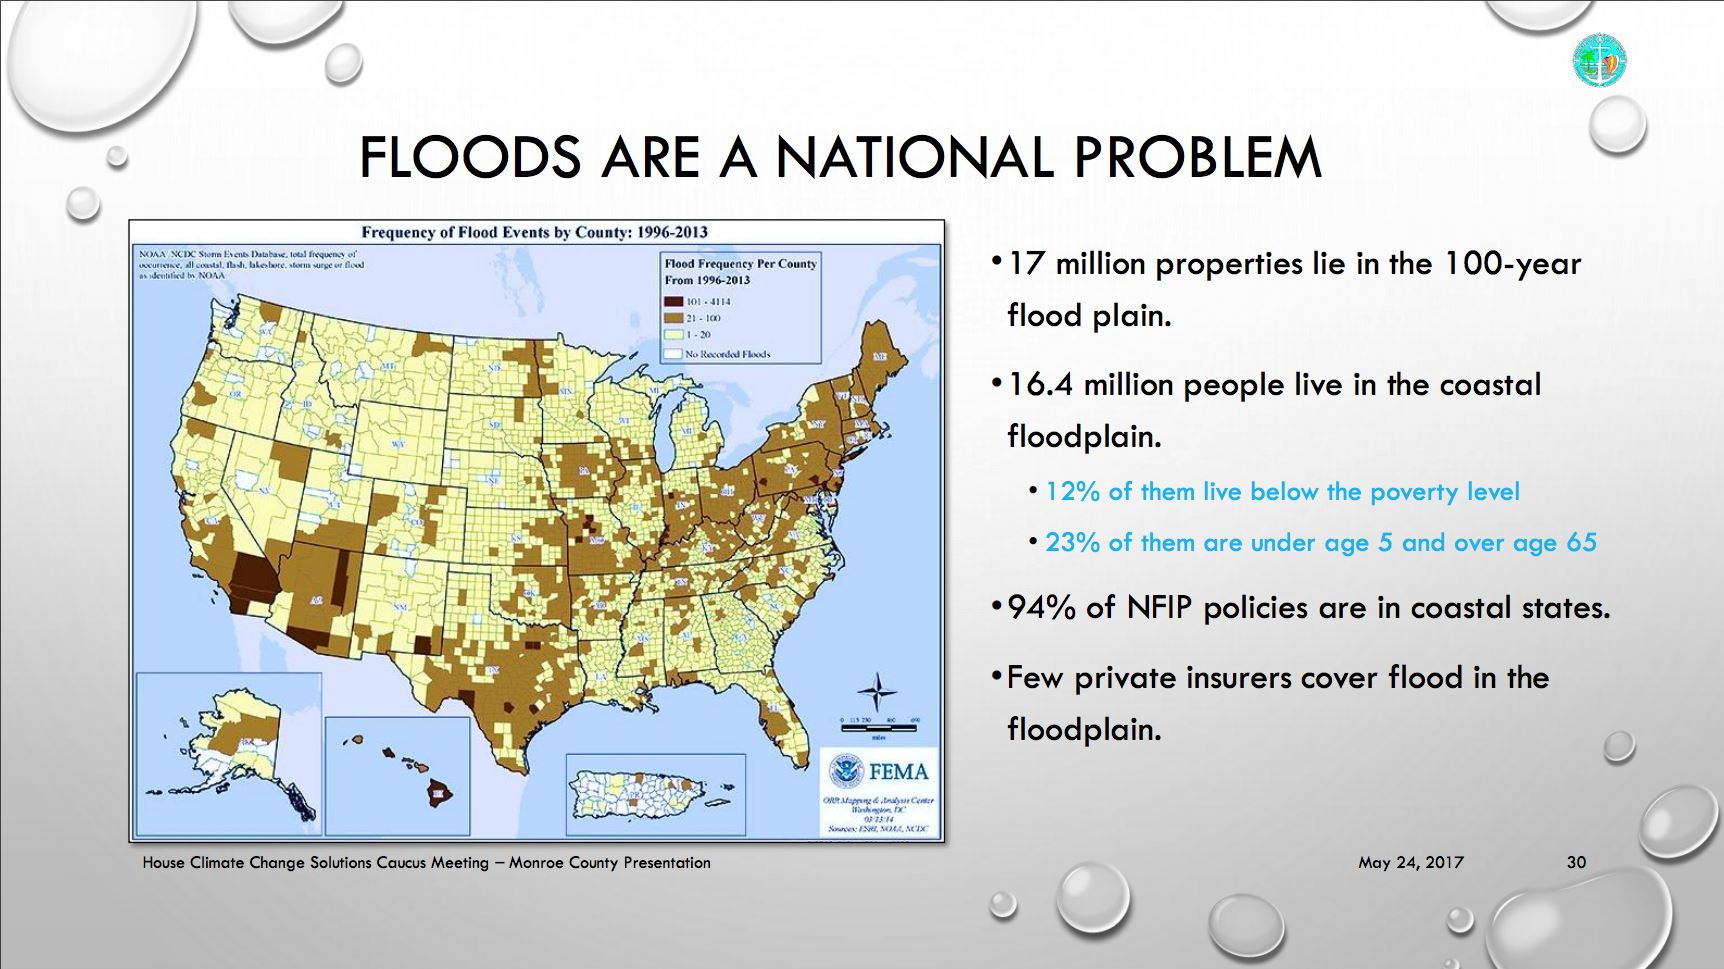 Photo of Floods are a National Problem Map about National Flood Insurance Program